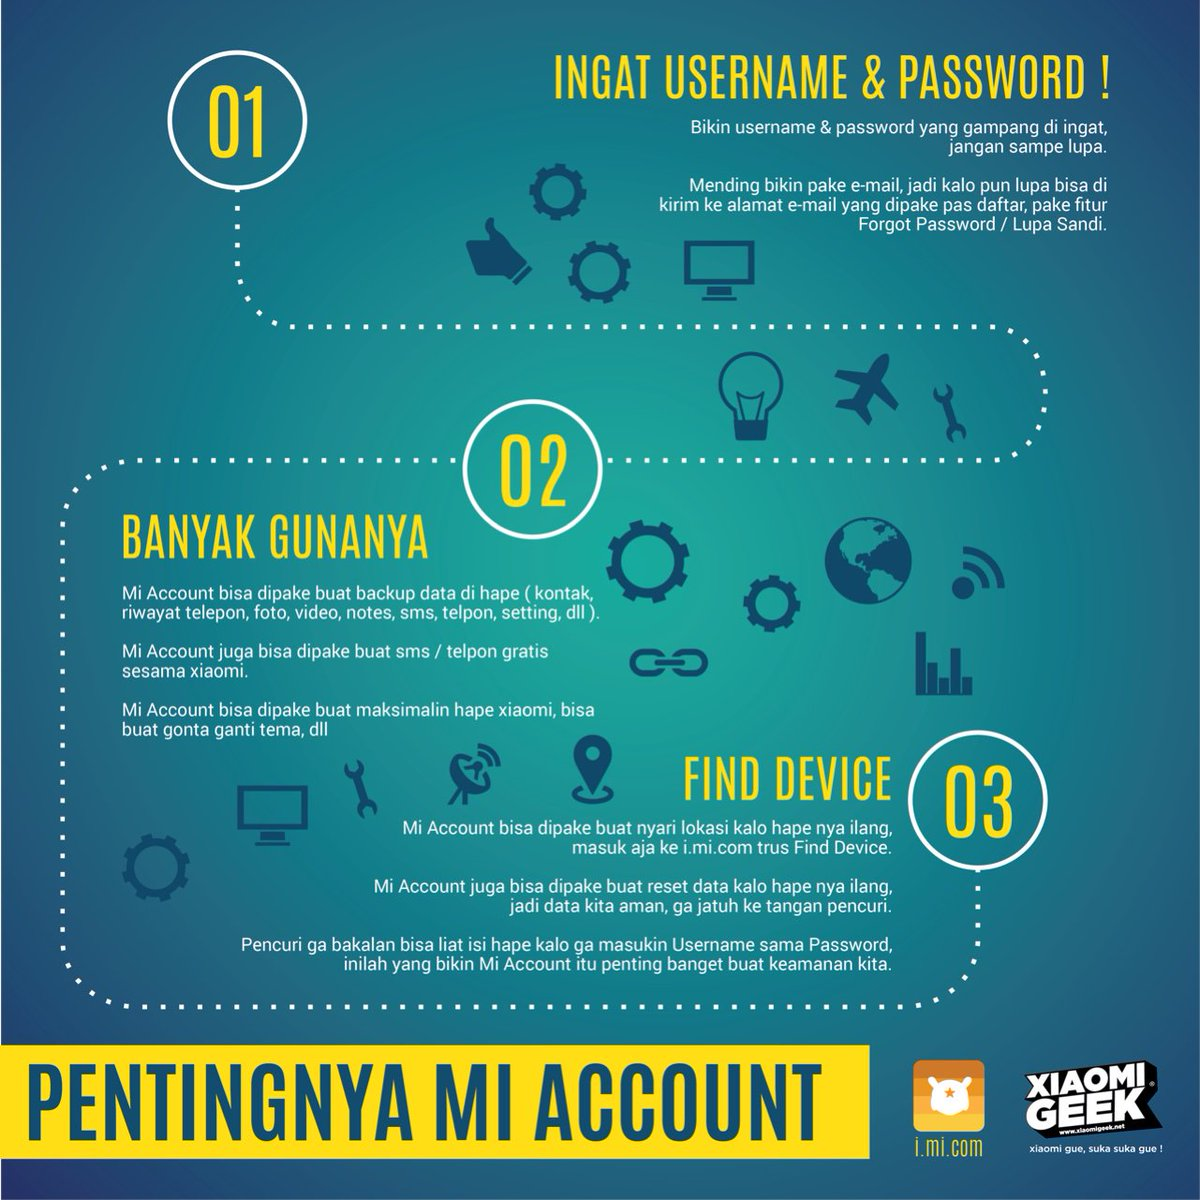 miaccount hashtag on Twitter